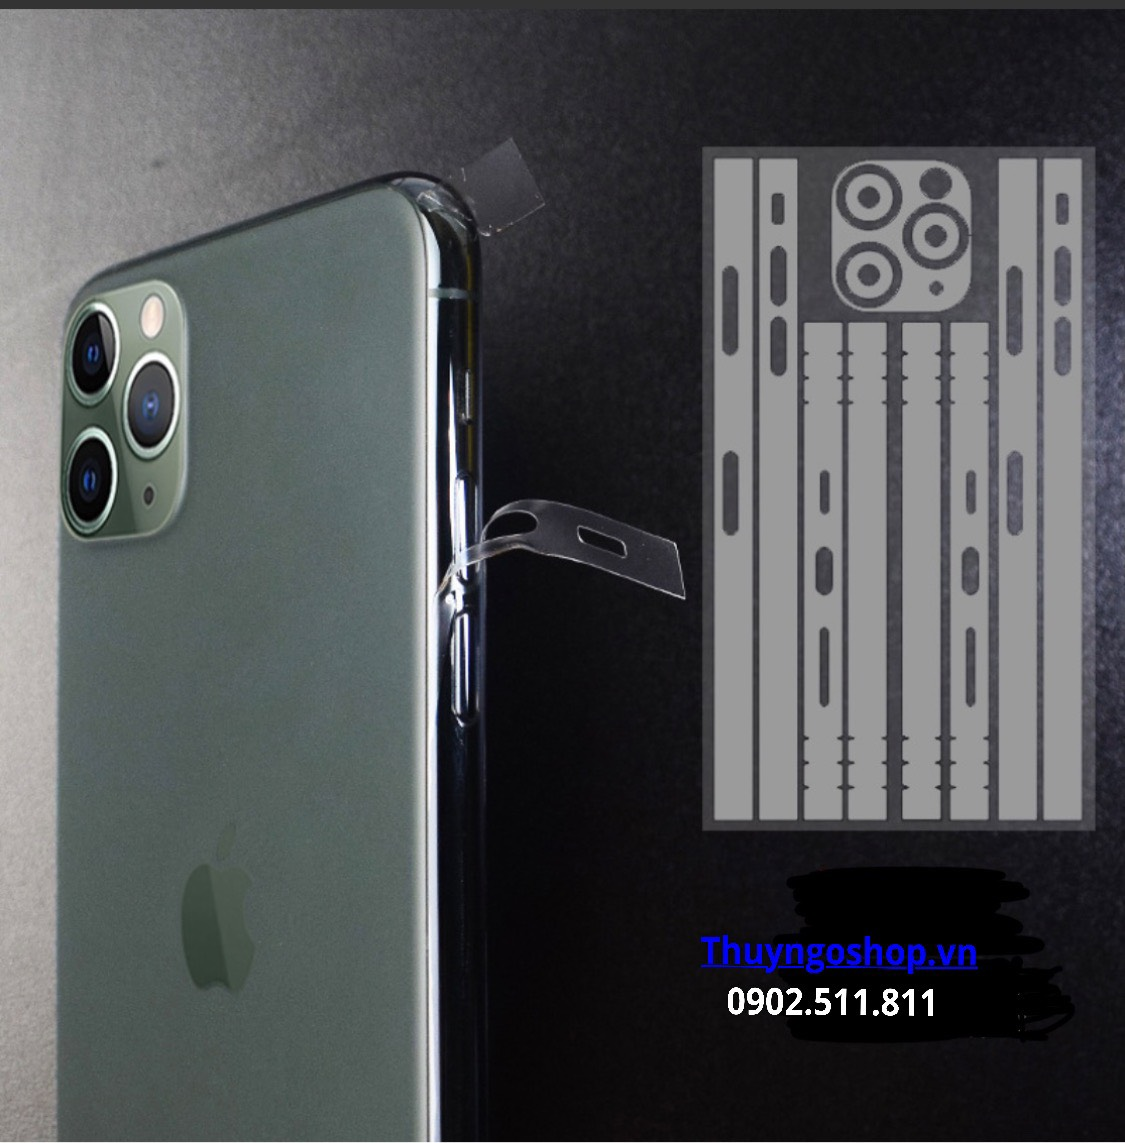 PPF 4 cạnh viền trong suốt / mờ Iphone Xs Max